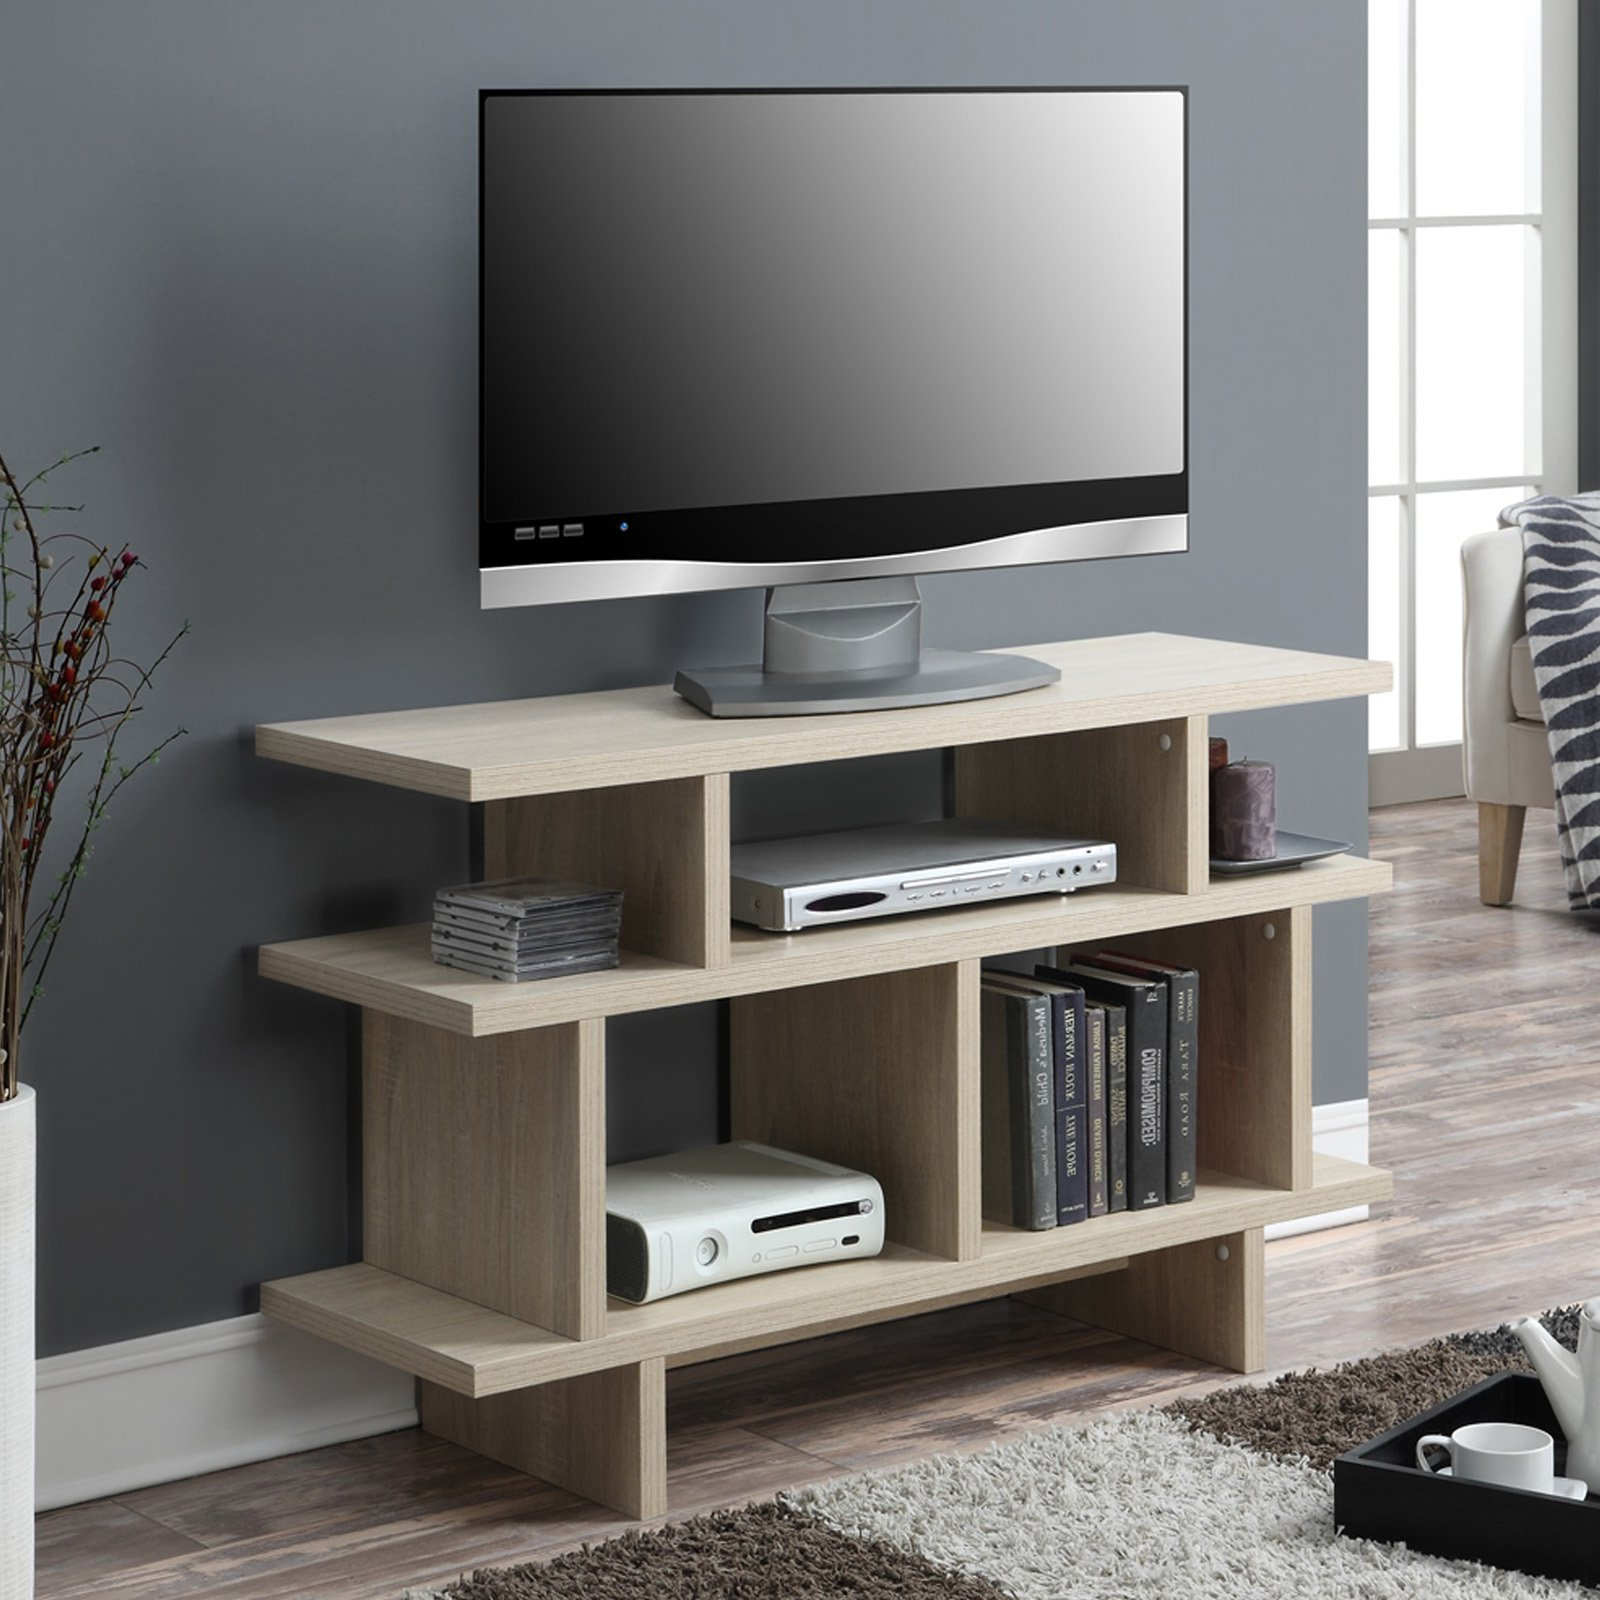 """Well Liked Mainstays Tv Stands For Tvs With Multiple Colors Pertaining To Convenience Concepts Key West 48"""" Tv Stand Console (View 7 of 10)"""